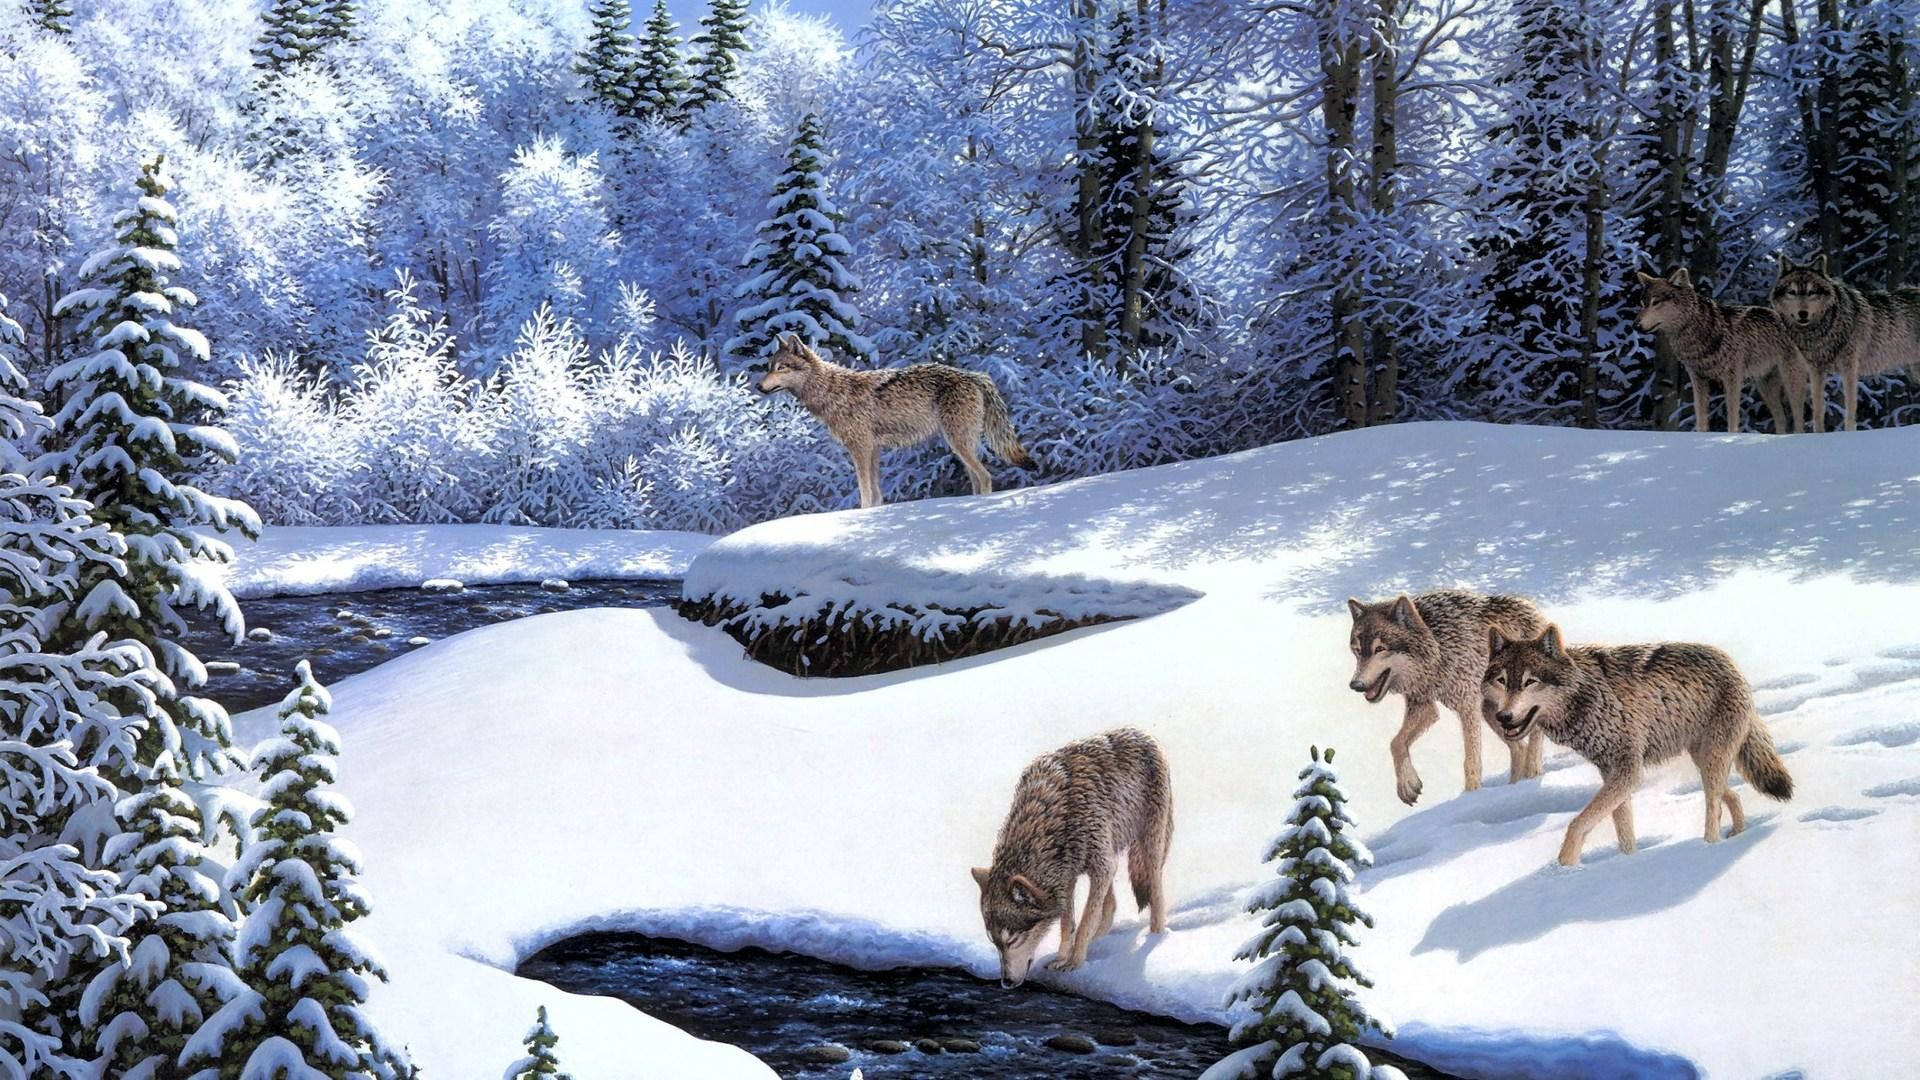 1920x1080 Winter Wolves Wallpaper - HD Wallpapers Backgrounds of Your Choice